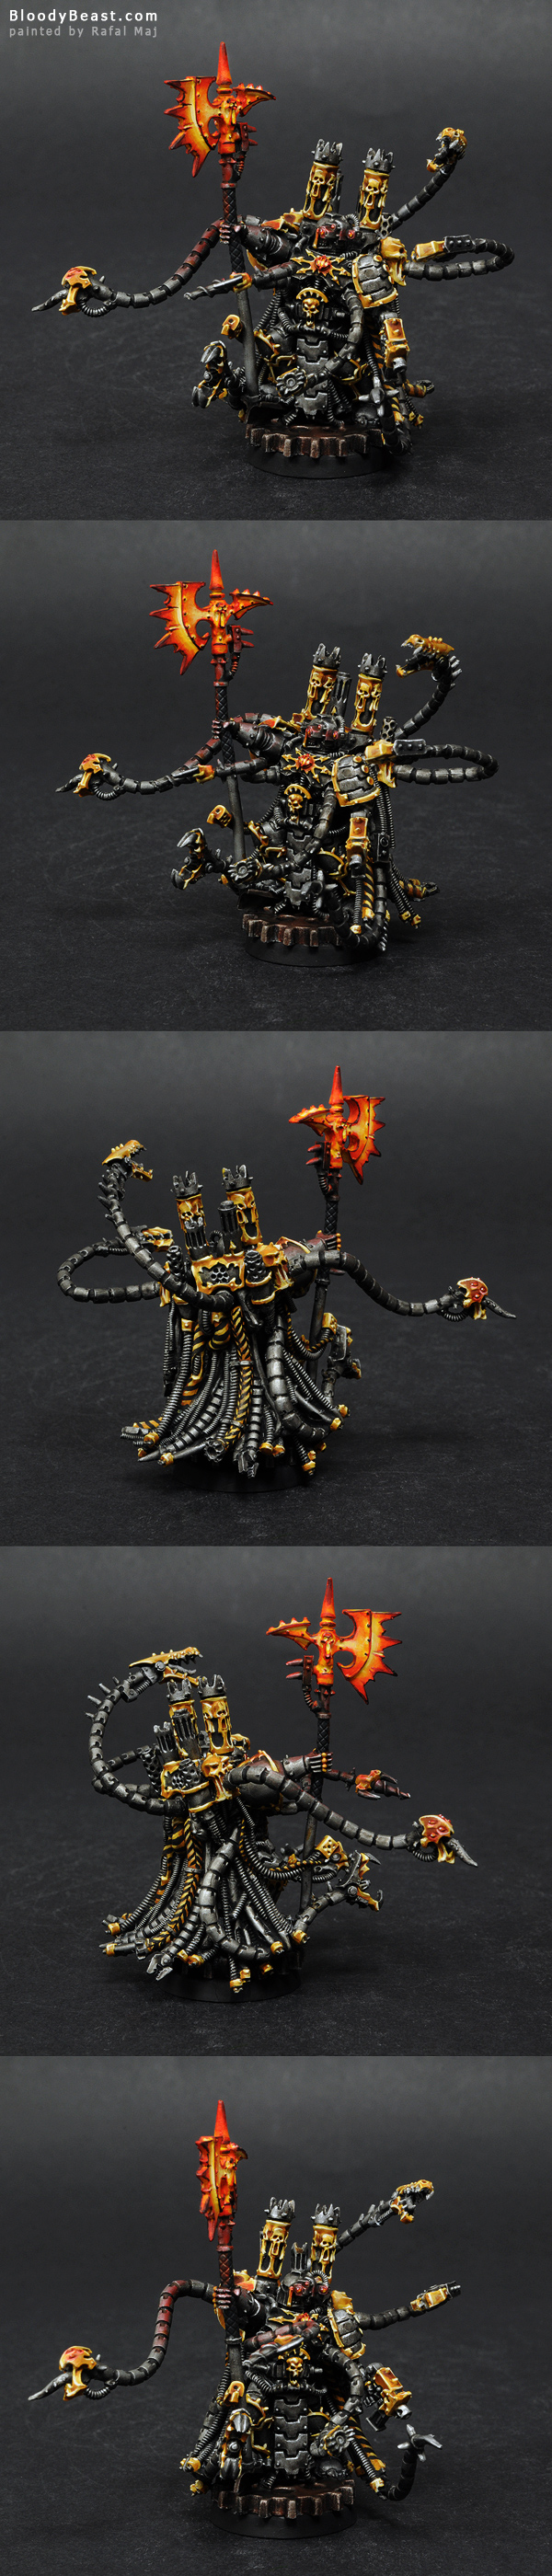 Chaos Space Marines Warpsmith painted by Rafal Maj (BloodyBeast.com)